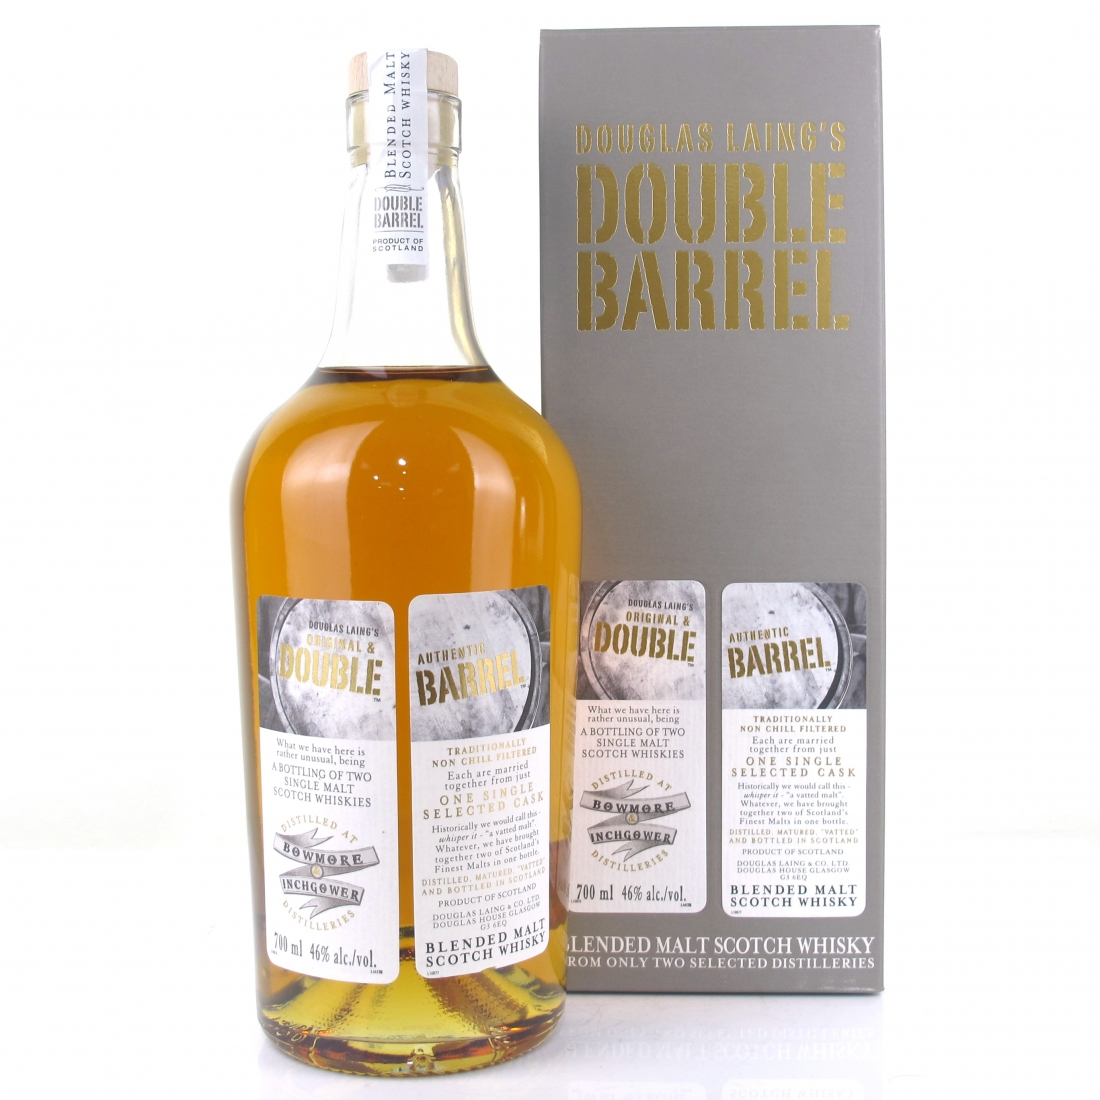 Bowmore / Inchgower Double Barrel Douglas Laing